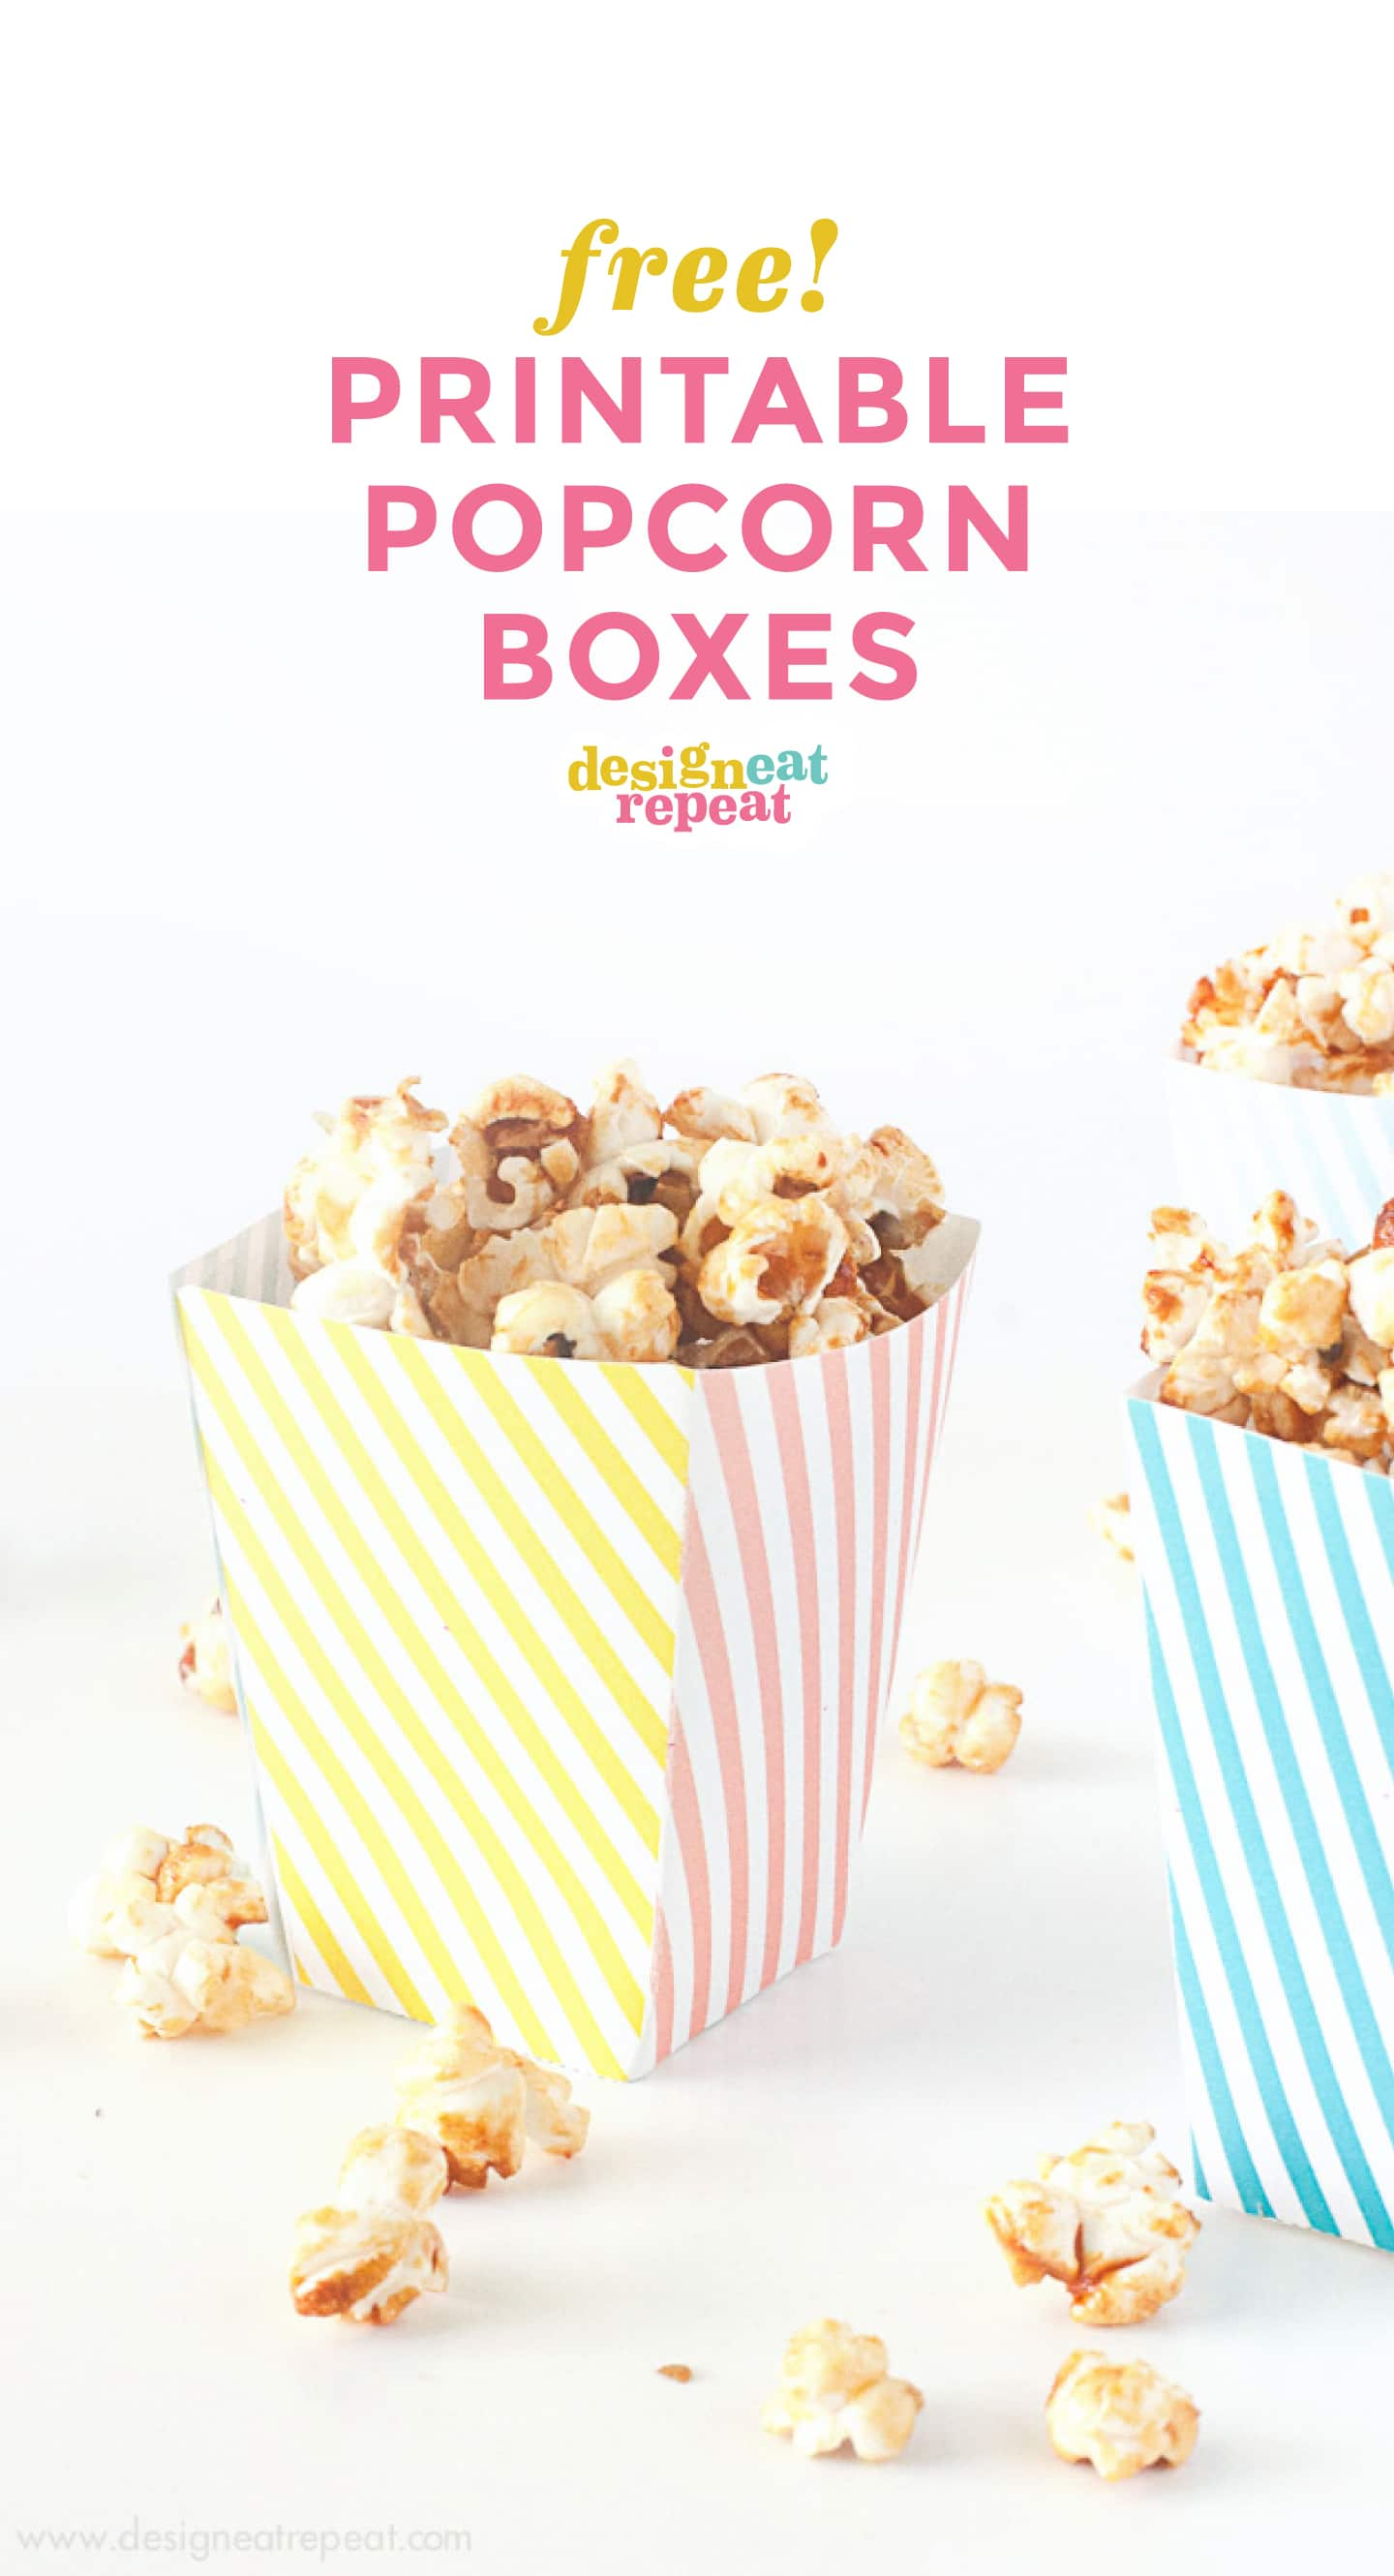 Pink, yellow, and blue striped free printable popcorn box template for birthday, circus party, baby shower.